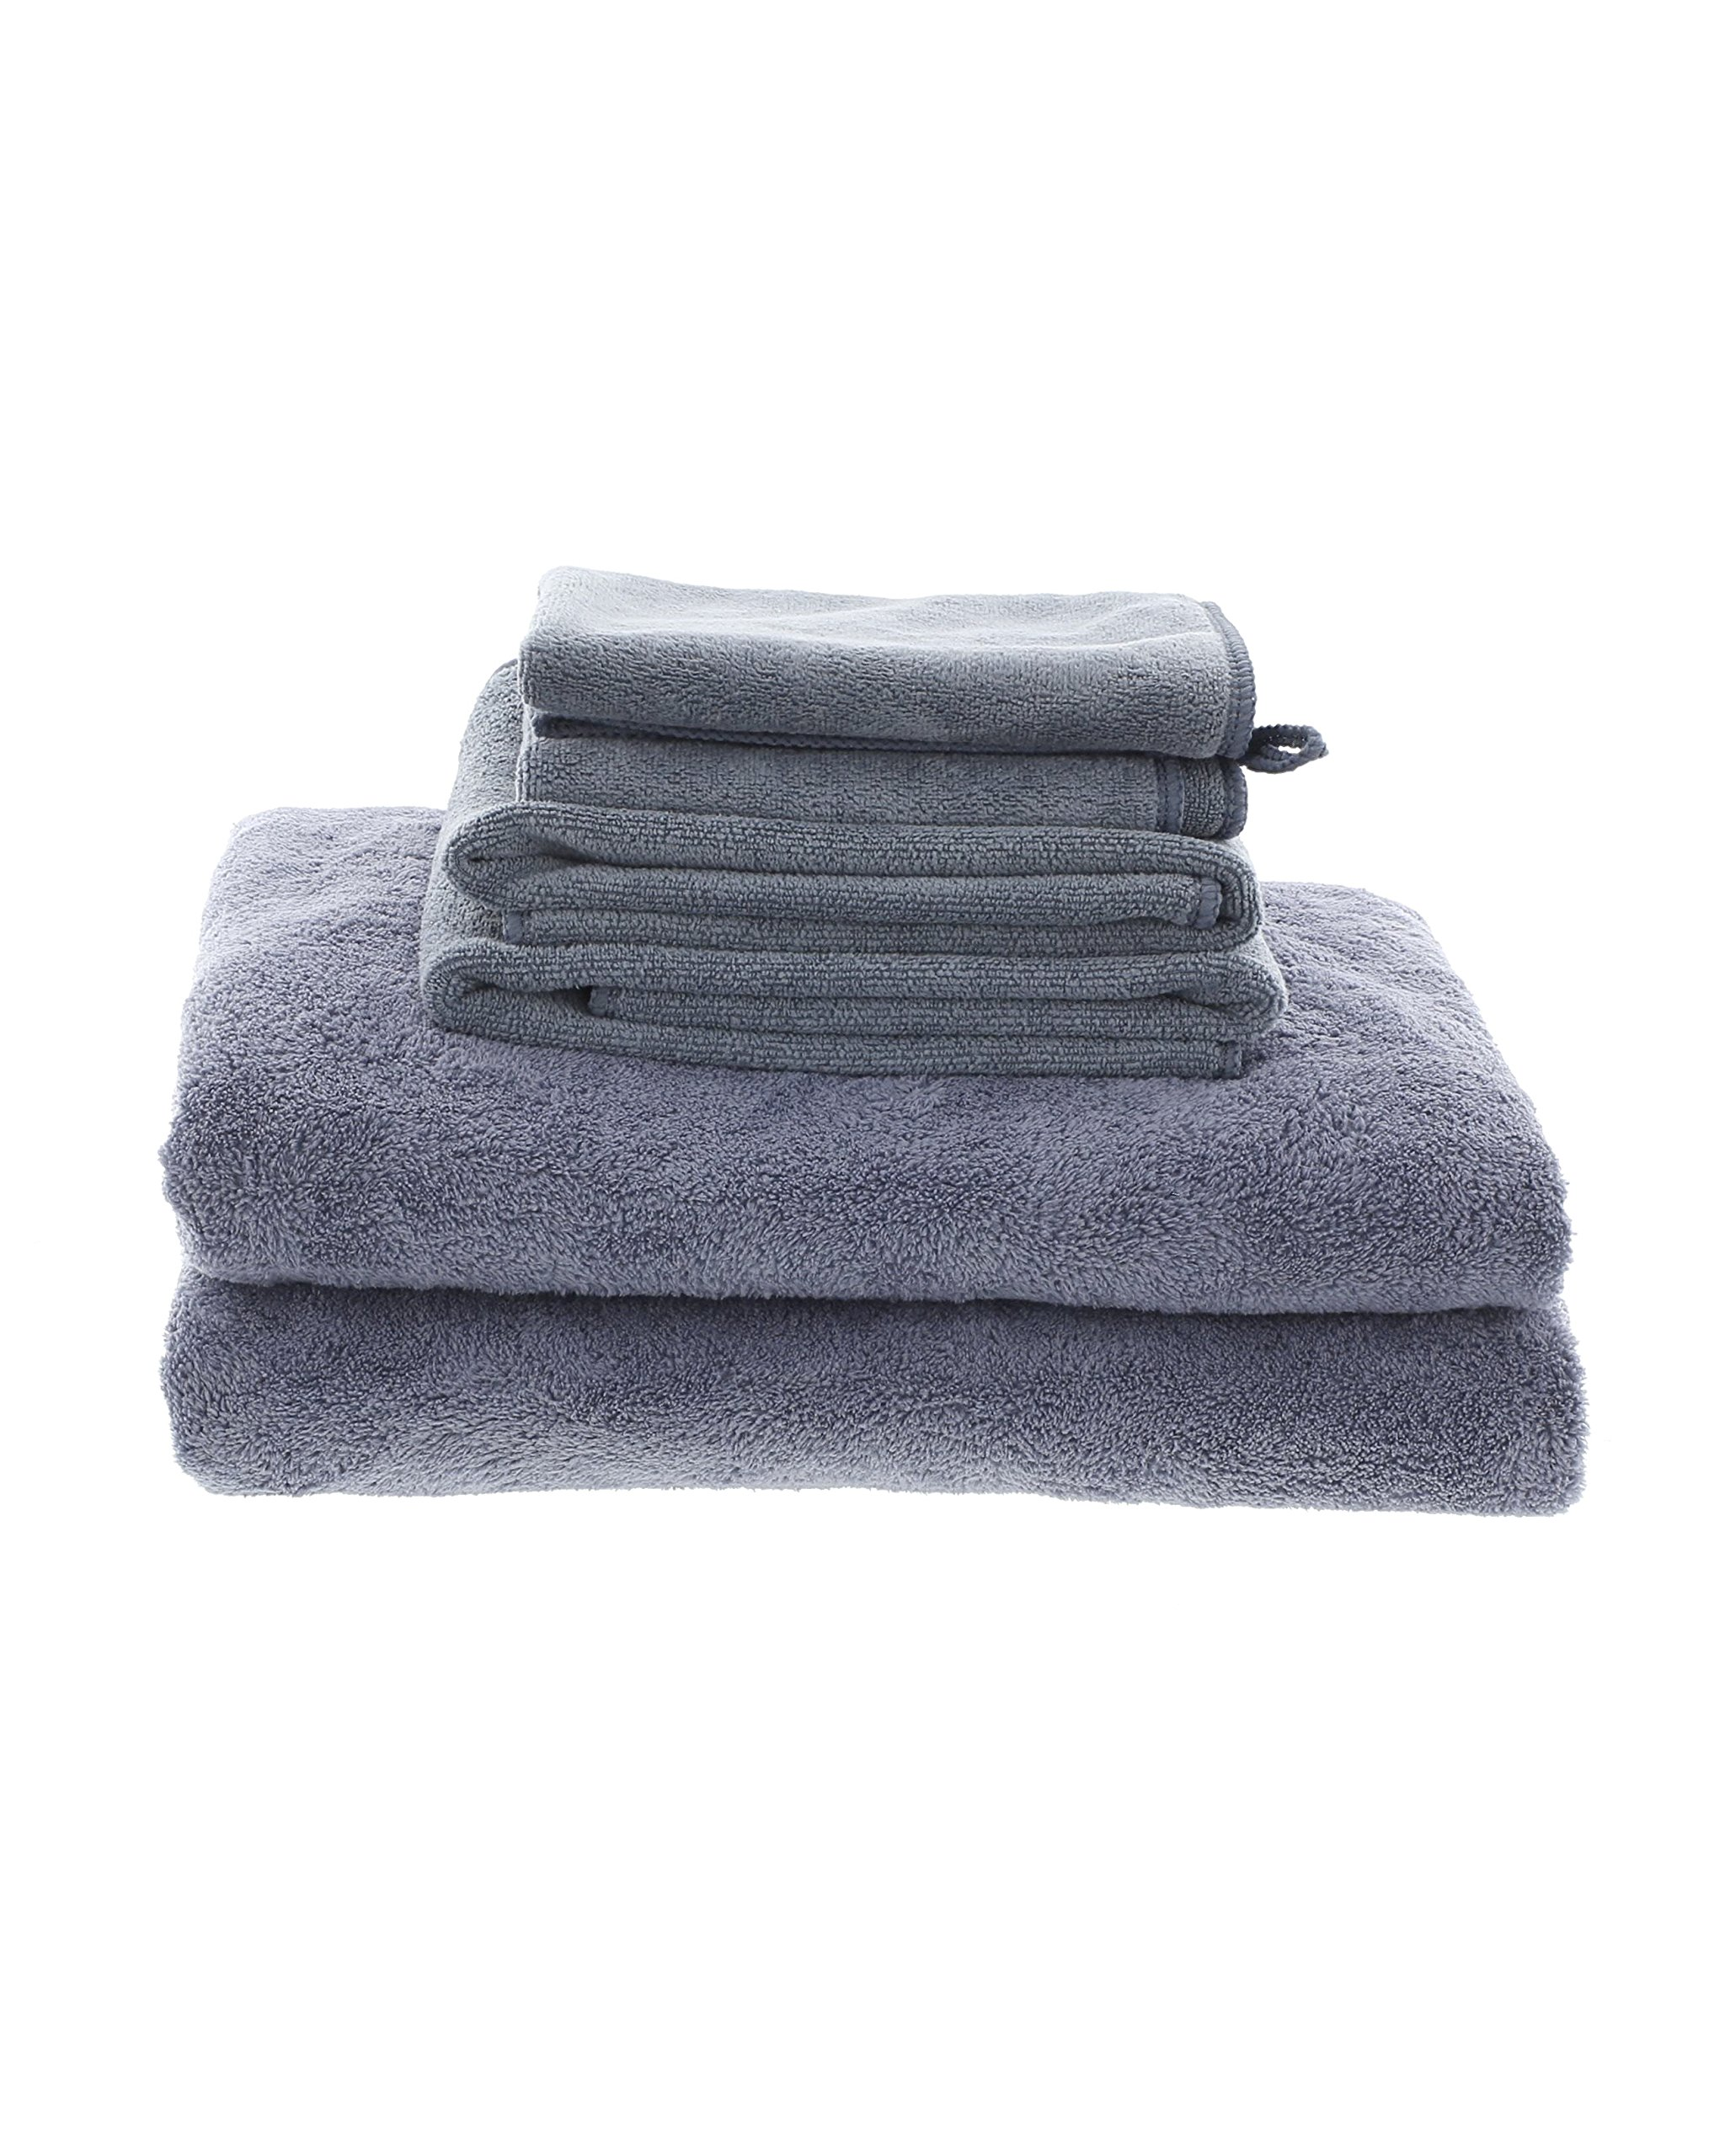 Best Grey MojaFiber Microfiber Bath Combo Bath Towel (2) | Hand Towel (2) | Face Cloth (2) by MojaWorks